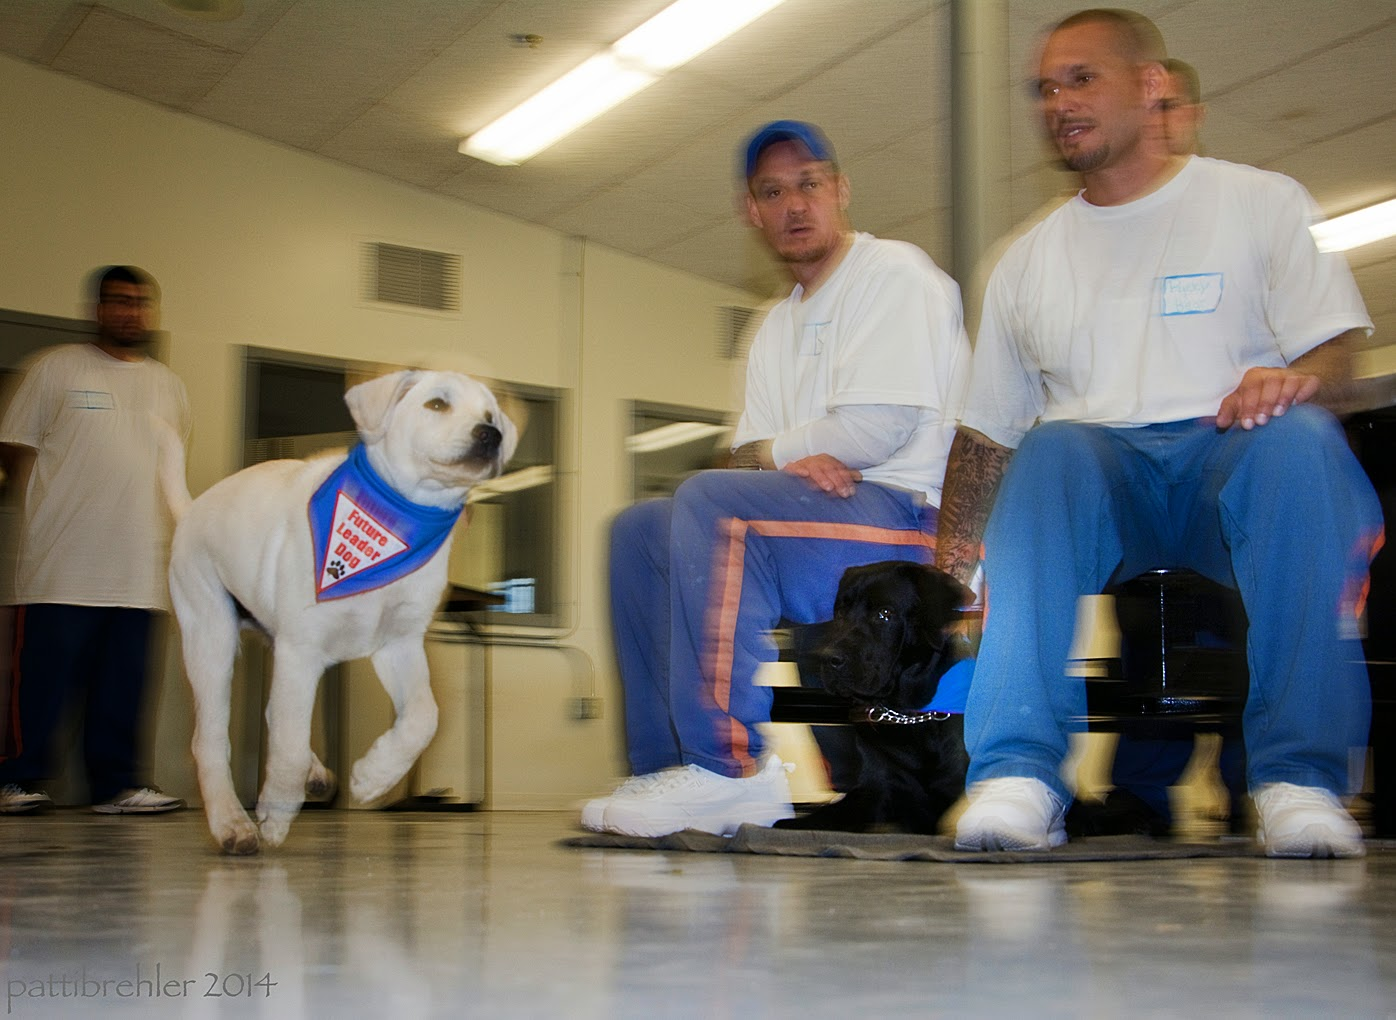 A young yellow lab puppy is running from left to right, he is wearing the blue Future Leader Dog bandana. The puppy is the only thing in focus in the photo. There is a man in the background to the left, wearing blue prison pants and a white t-shirt. He is standing and facing the puppy. On the right are two men sitting down on the lunch room stools, both wearing blue prison pants and white t-shirts, the one on the left is wearing a blue baseballc ap. Between these two men is a black lab lying on the cement floor. The picture is taken from floor level, so the ceiling is visible with long florescent lights.